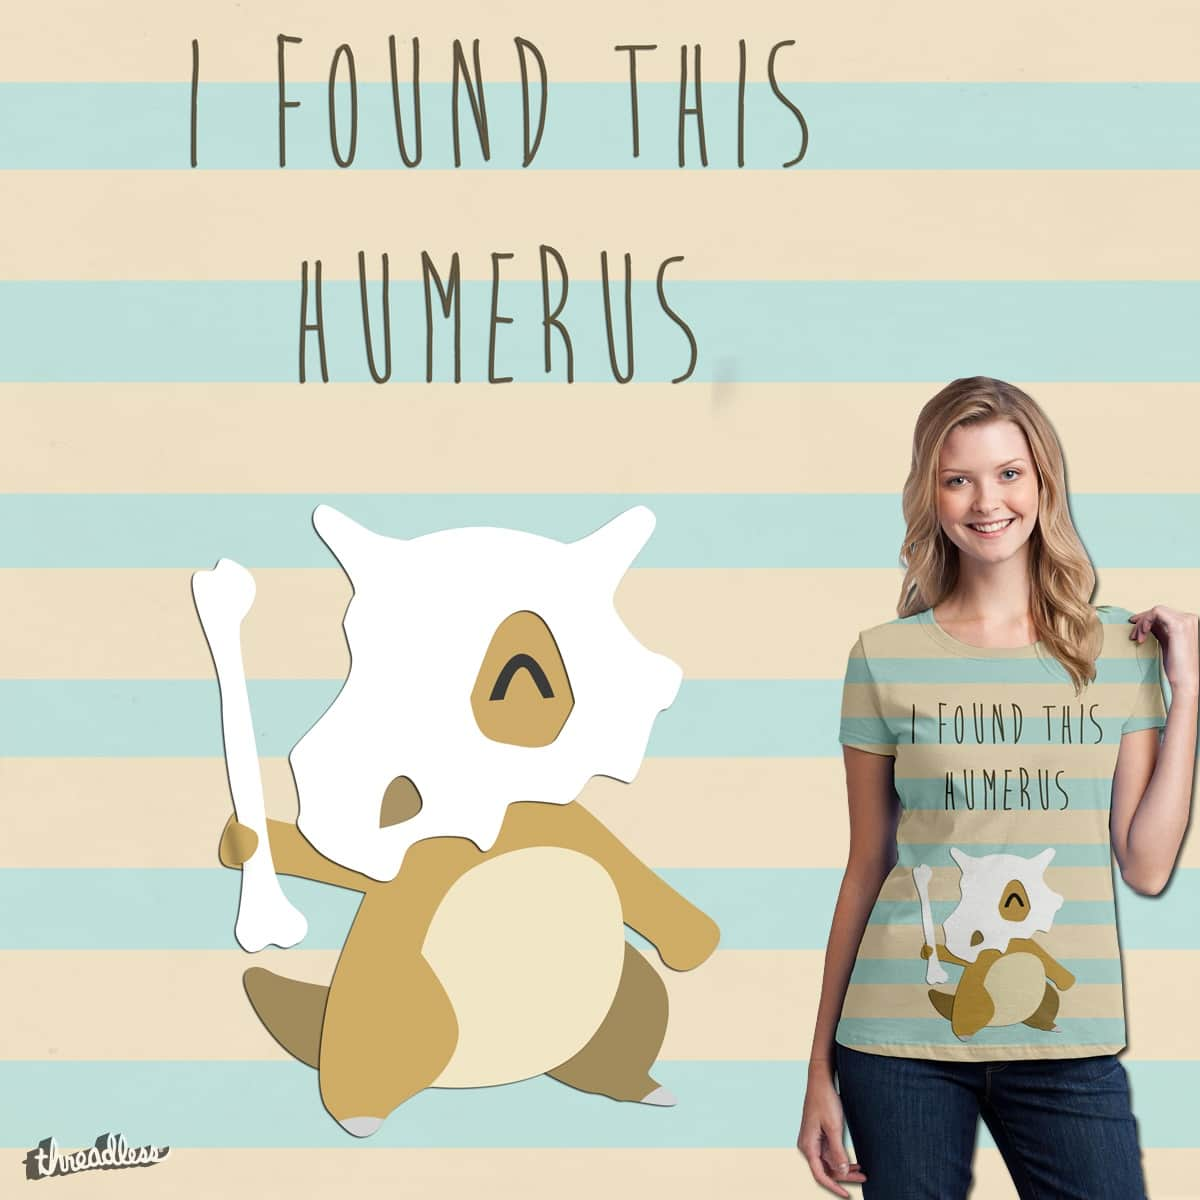 I Found This Humerus  by LashelleValentine on Threadless